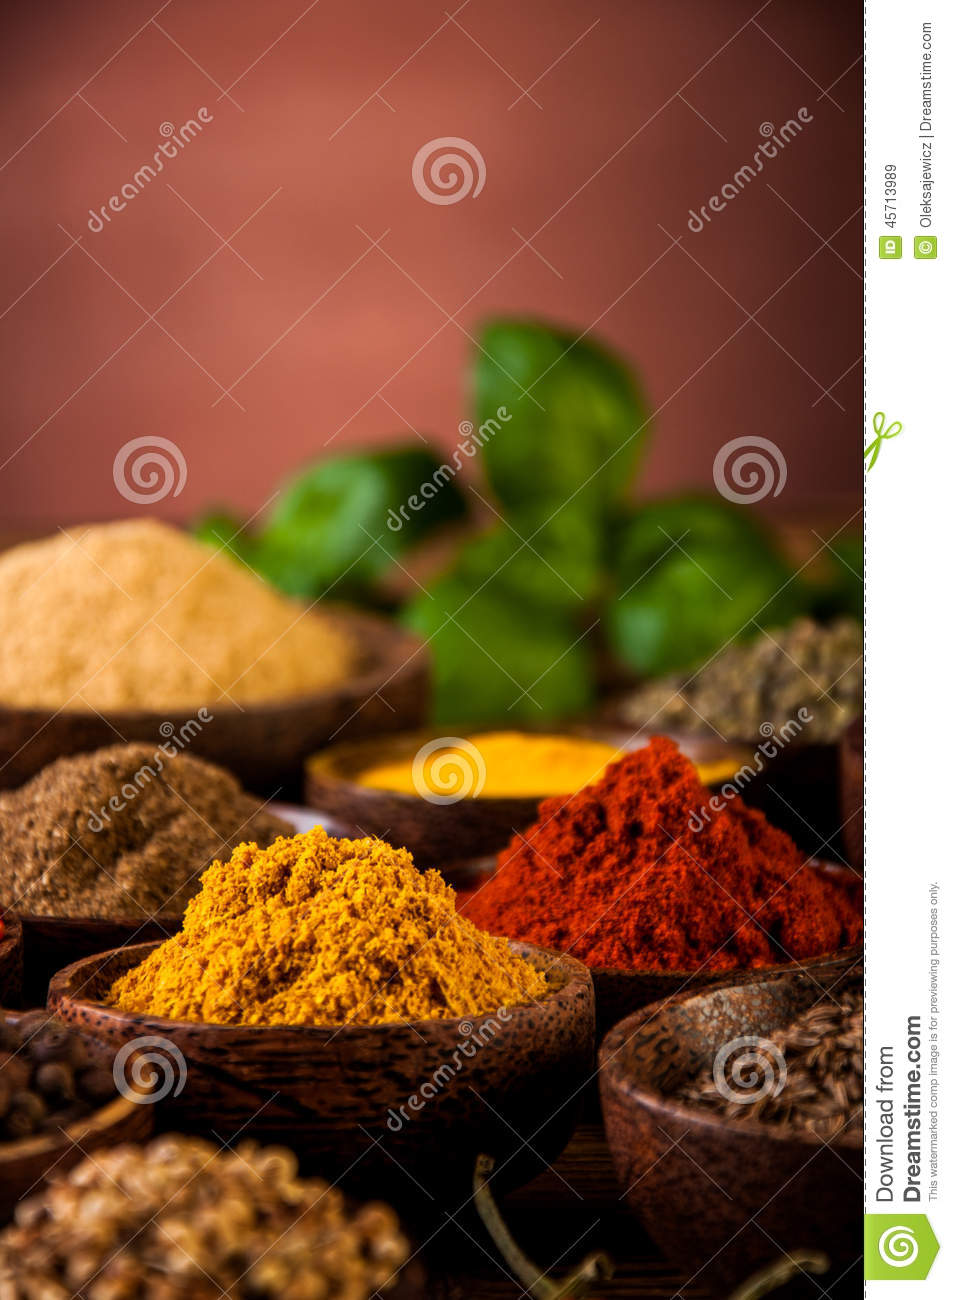 Spices of Indonesia stock image  Image of nature, cinnamon - 45713989